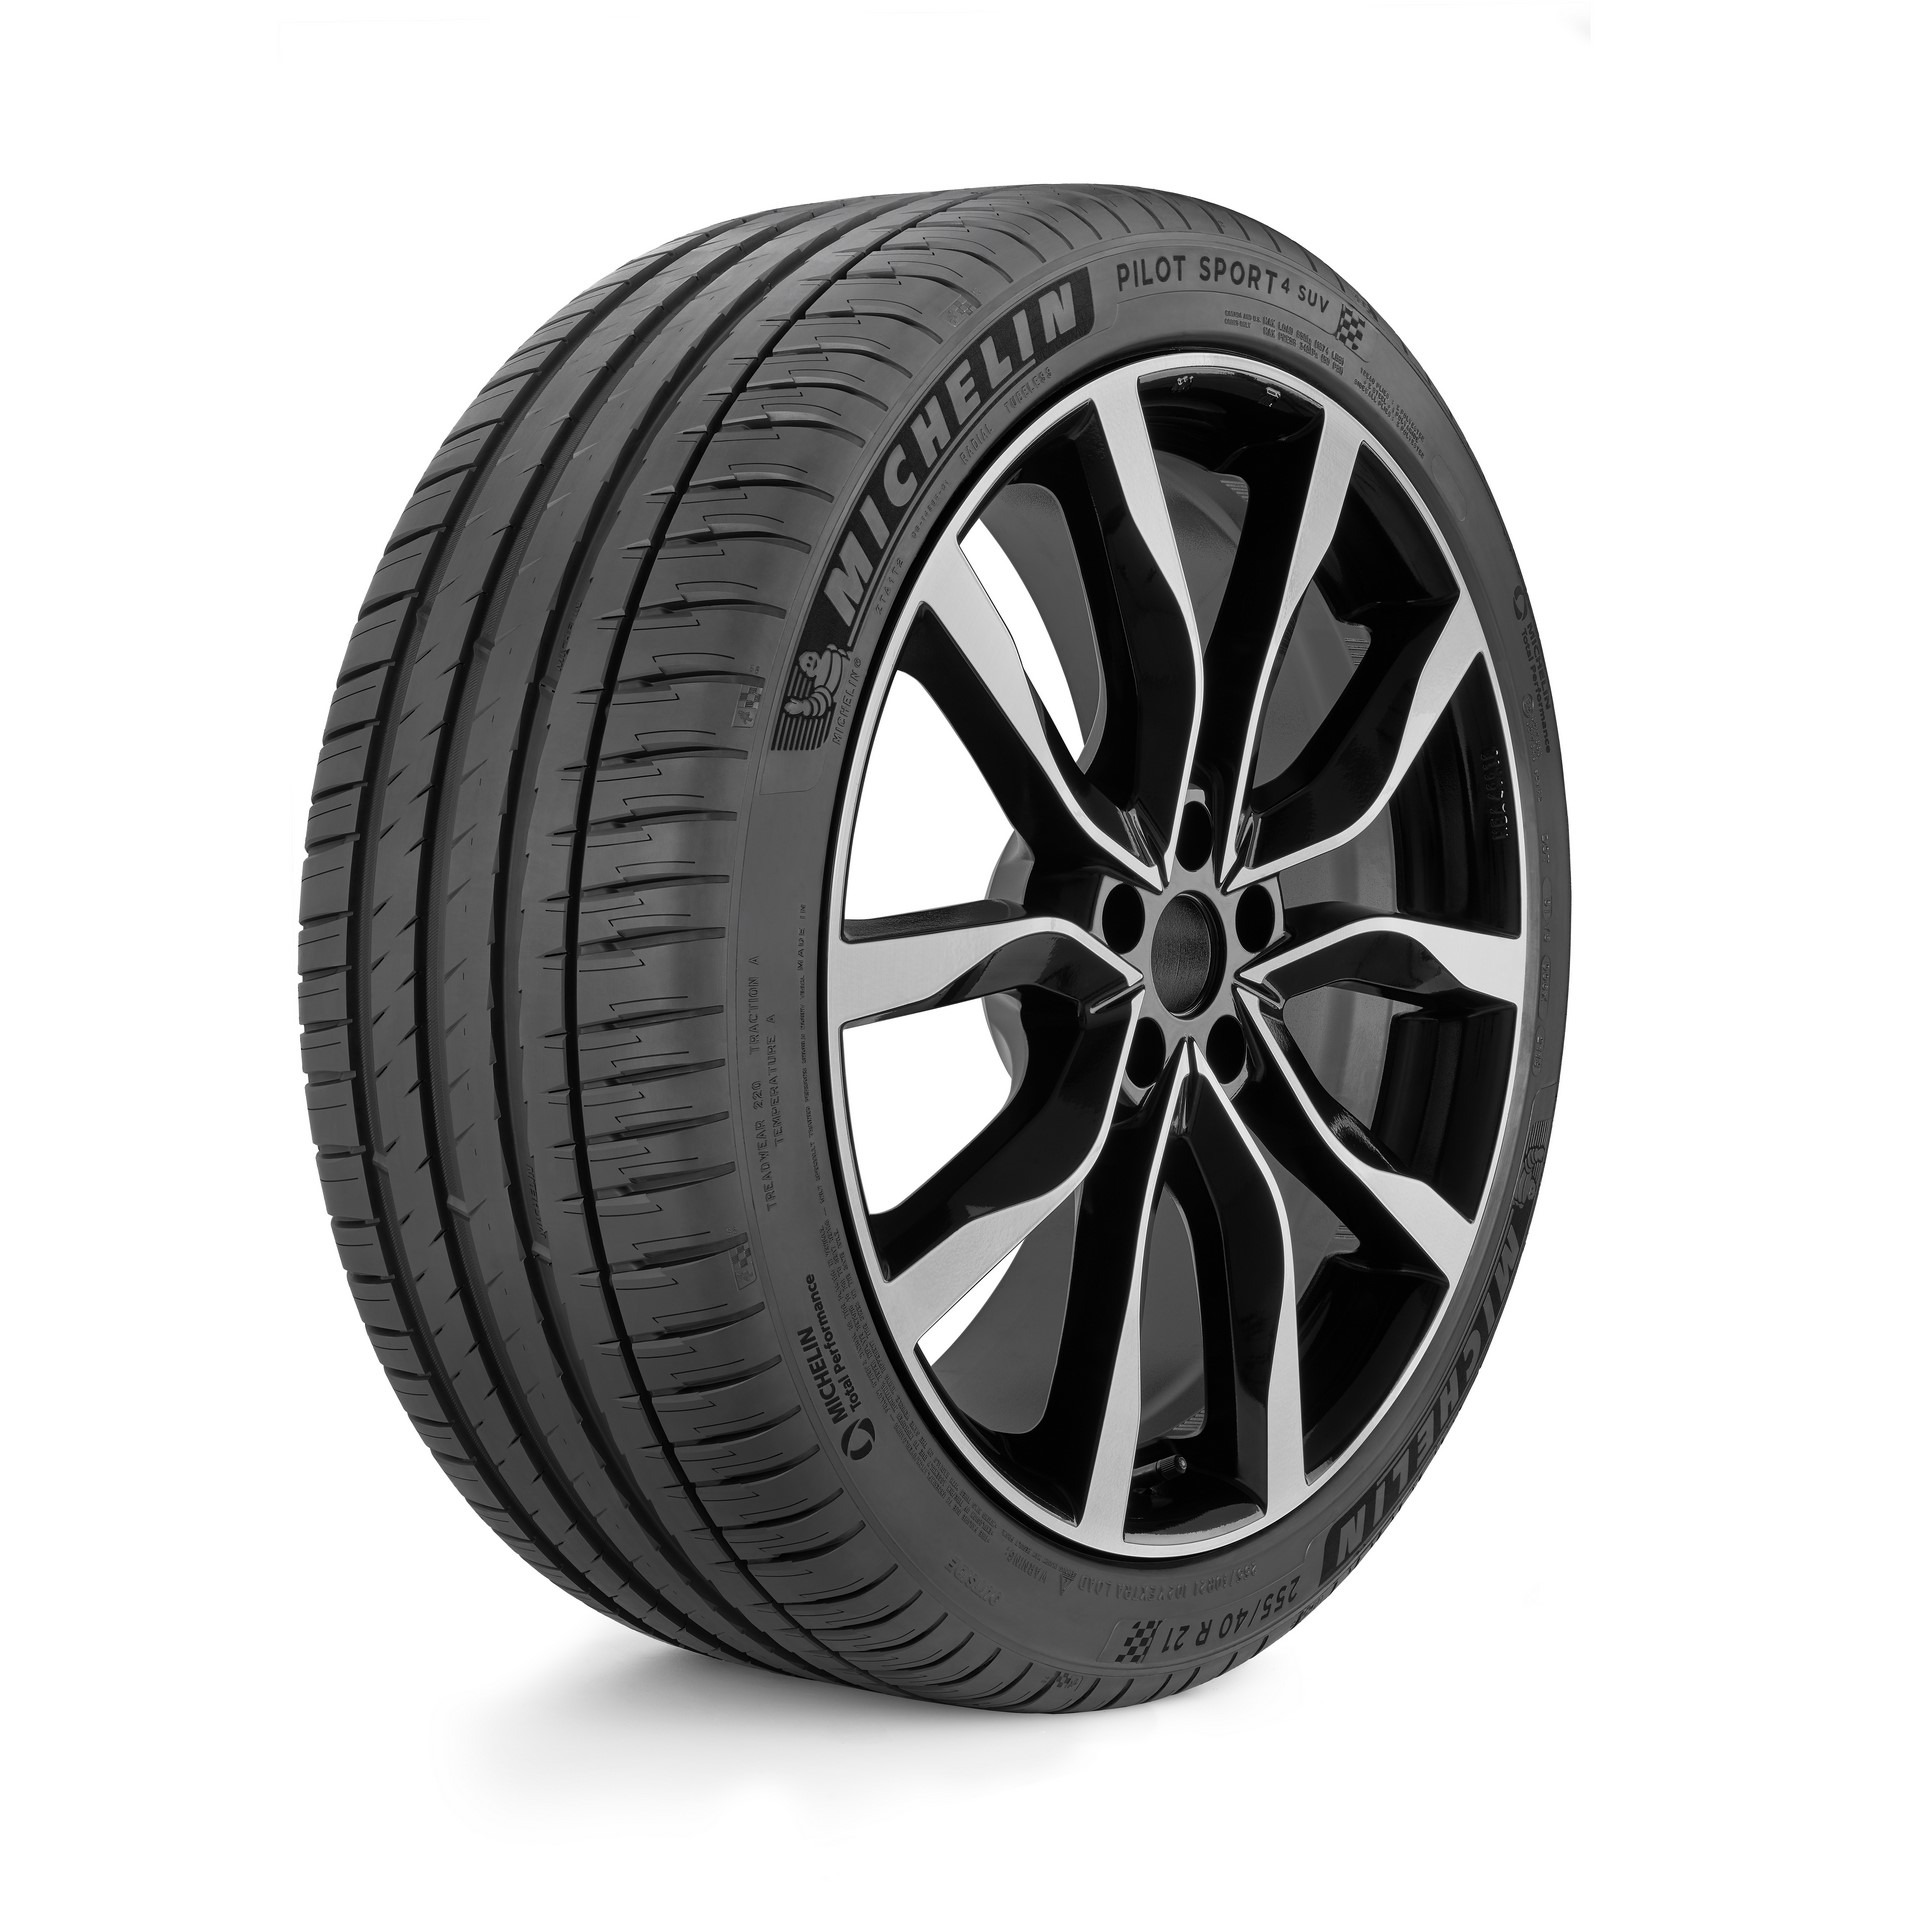 MichelinPilotSport4SUV